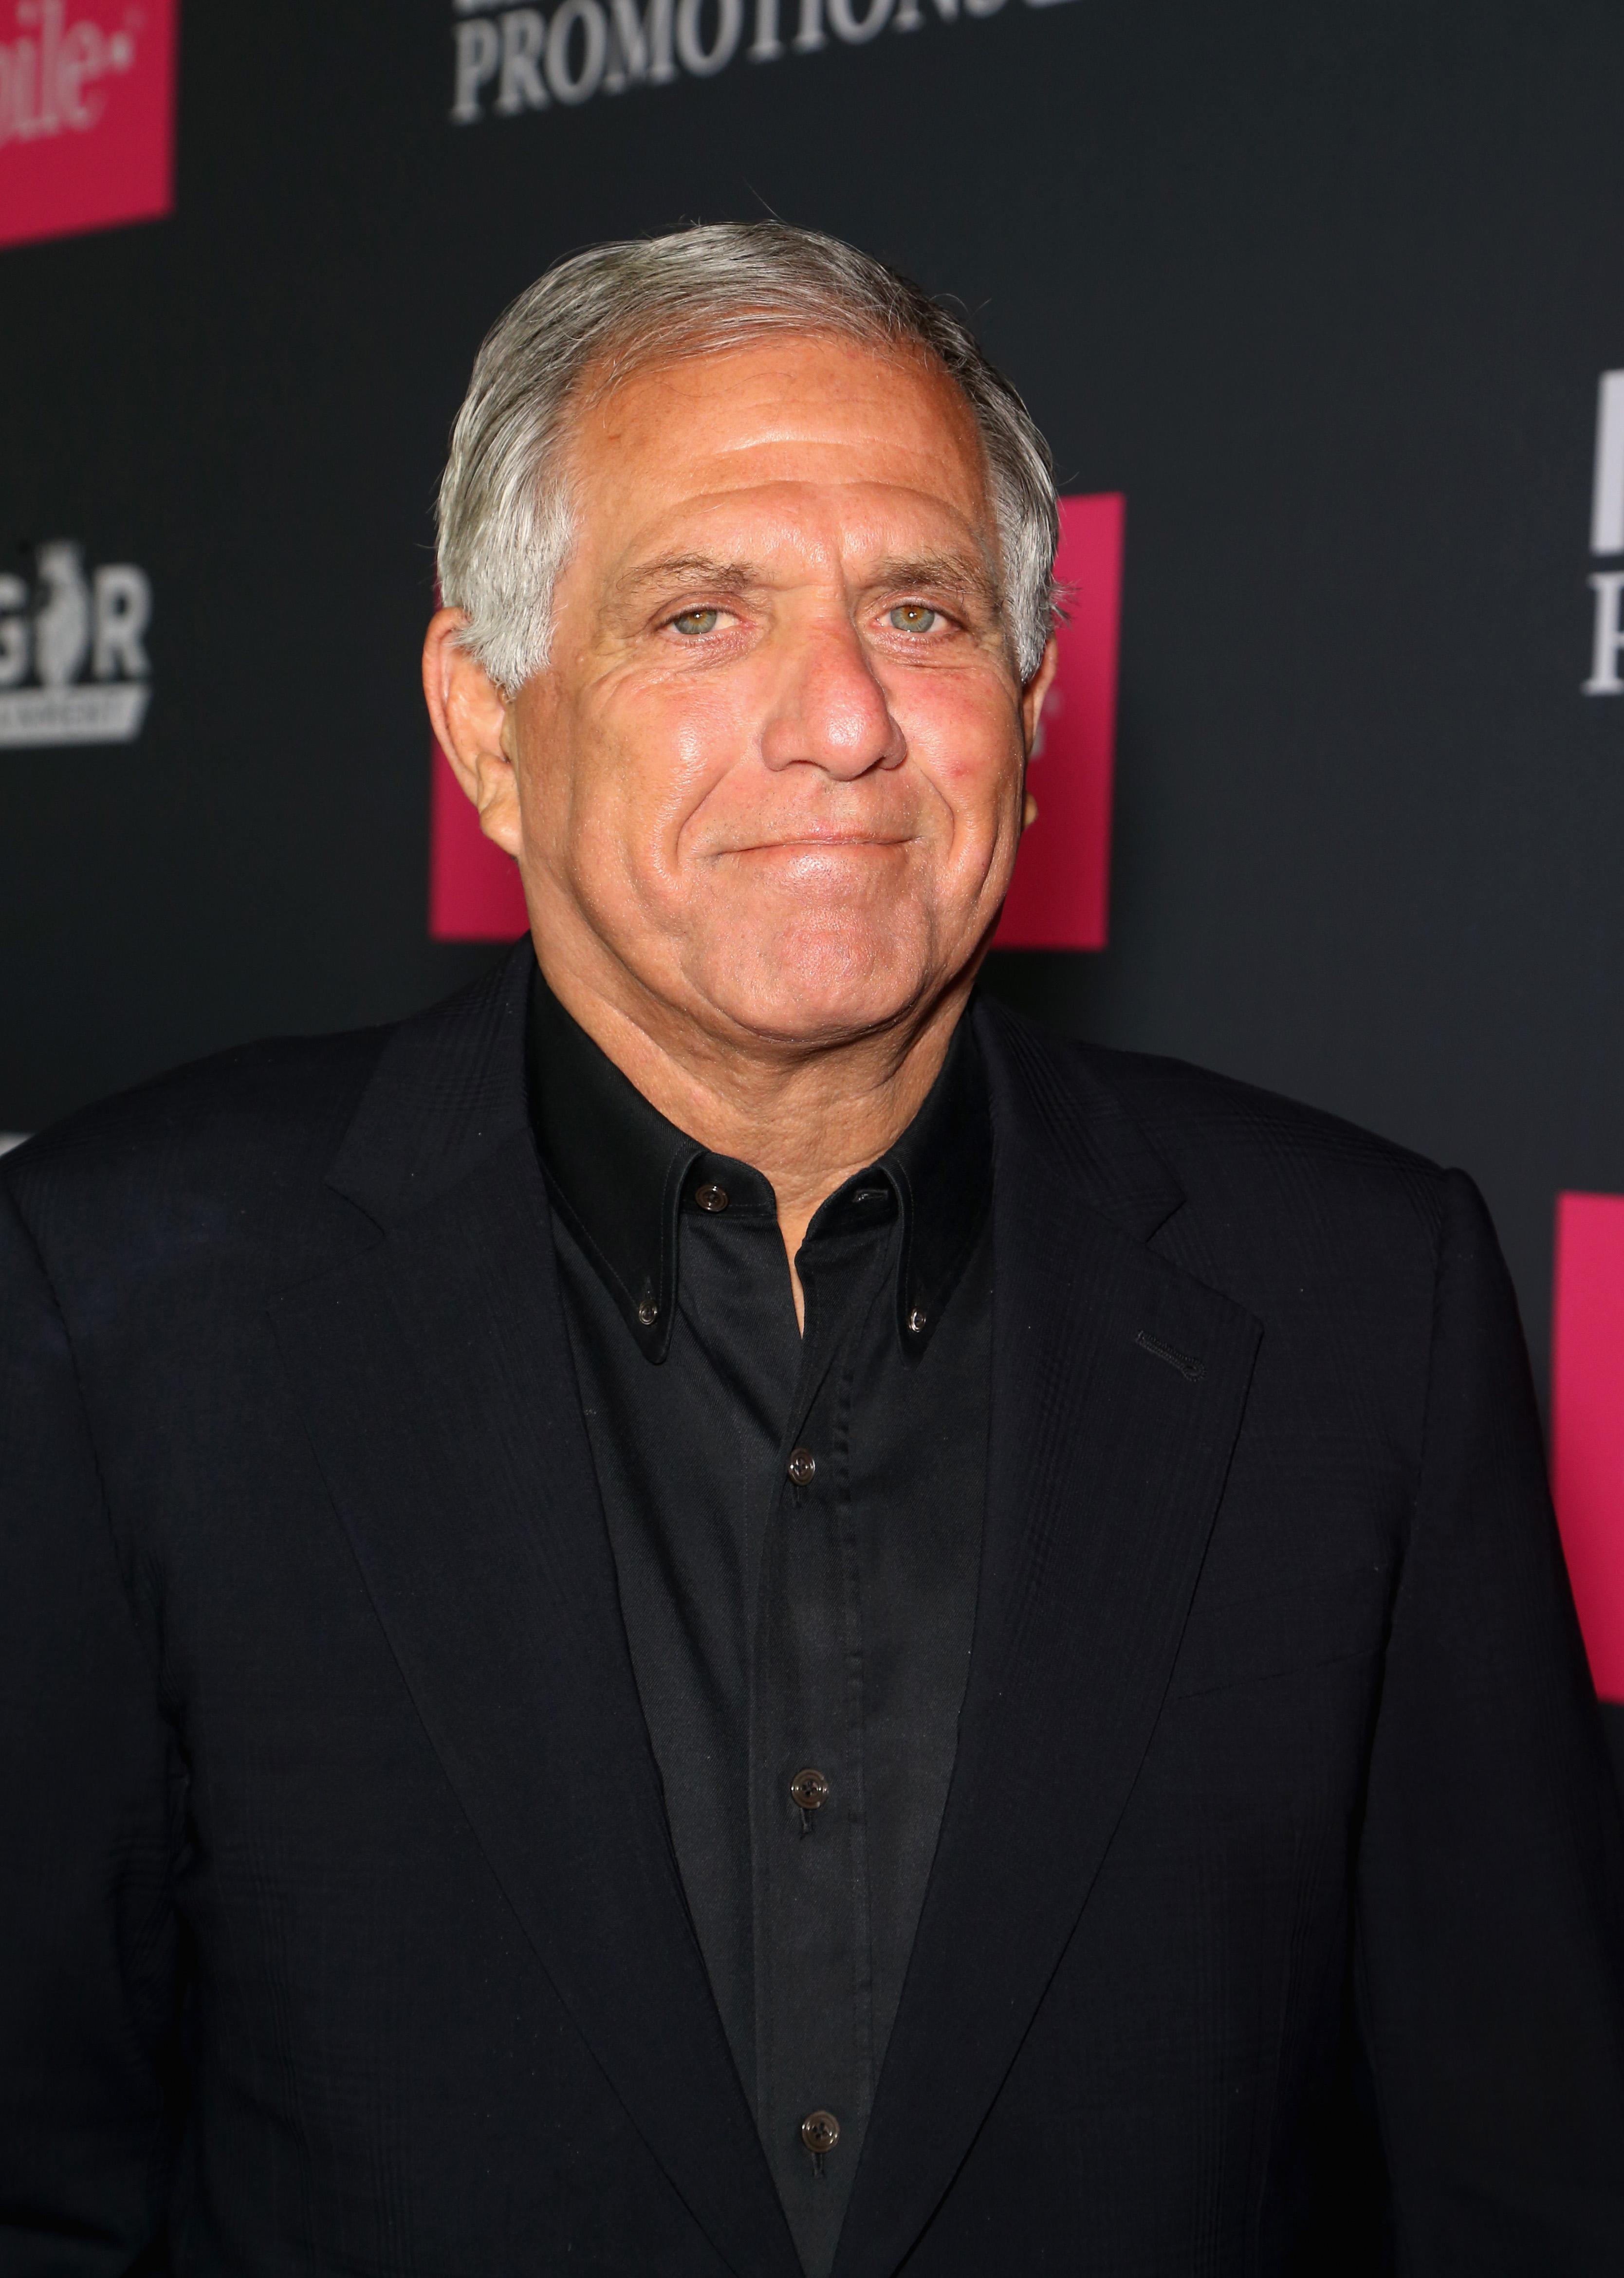 CBS Chief Executive Officer Leslie Moonves arrives for T-Mobile's Showtime, WME IME and Mayweather Promotions VIP Pre-Fight Party for Mayweather vs. McGregor at T-Mobile Arena on August 26, 2017 in Las Vegas, Nevada.